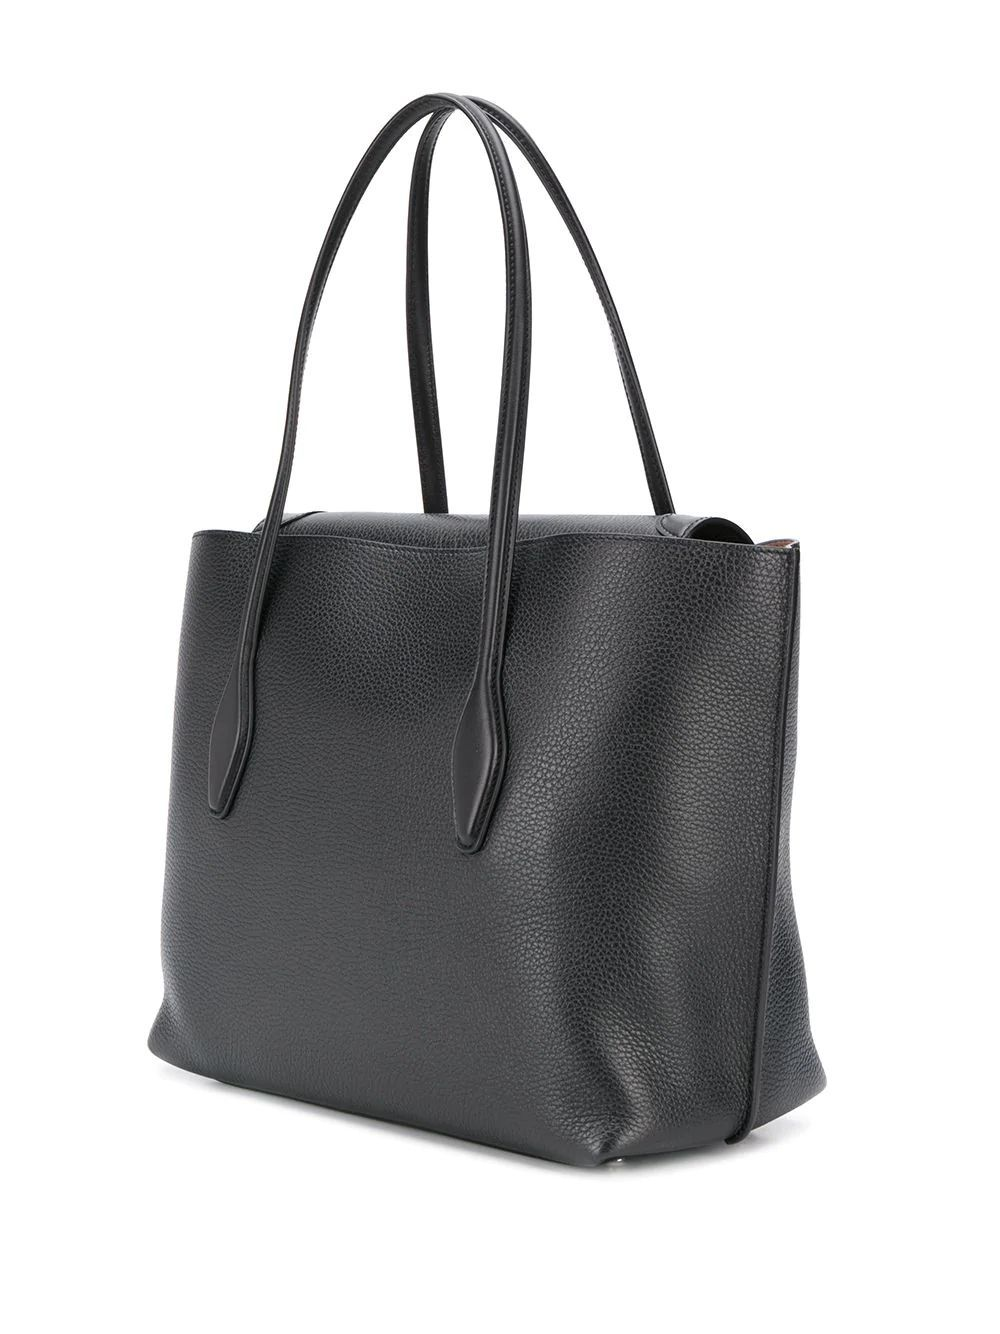 TOD'S WOMEN'S XBWANXA8300N95B999 BLACK LEATHER TOTE